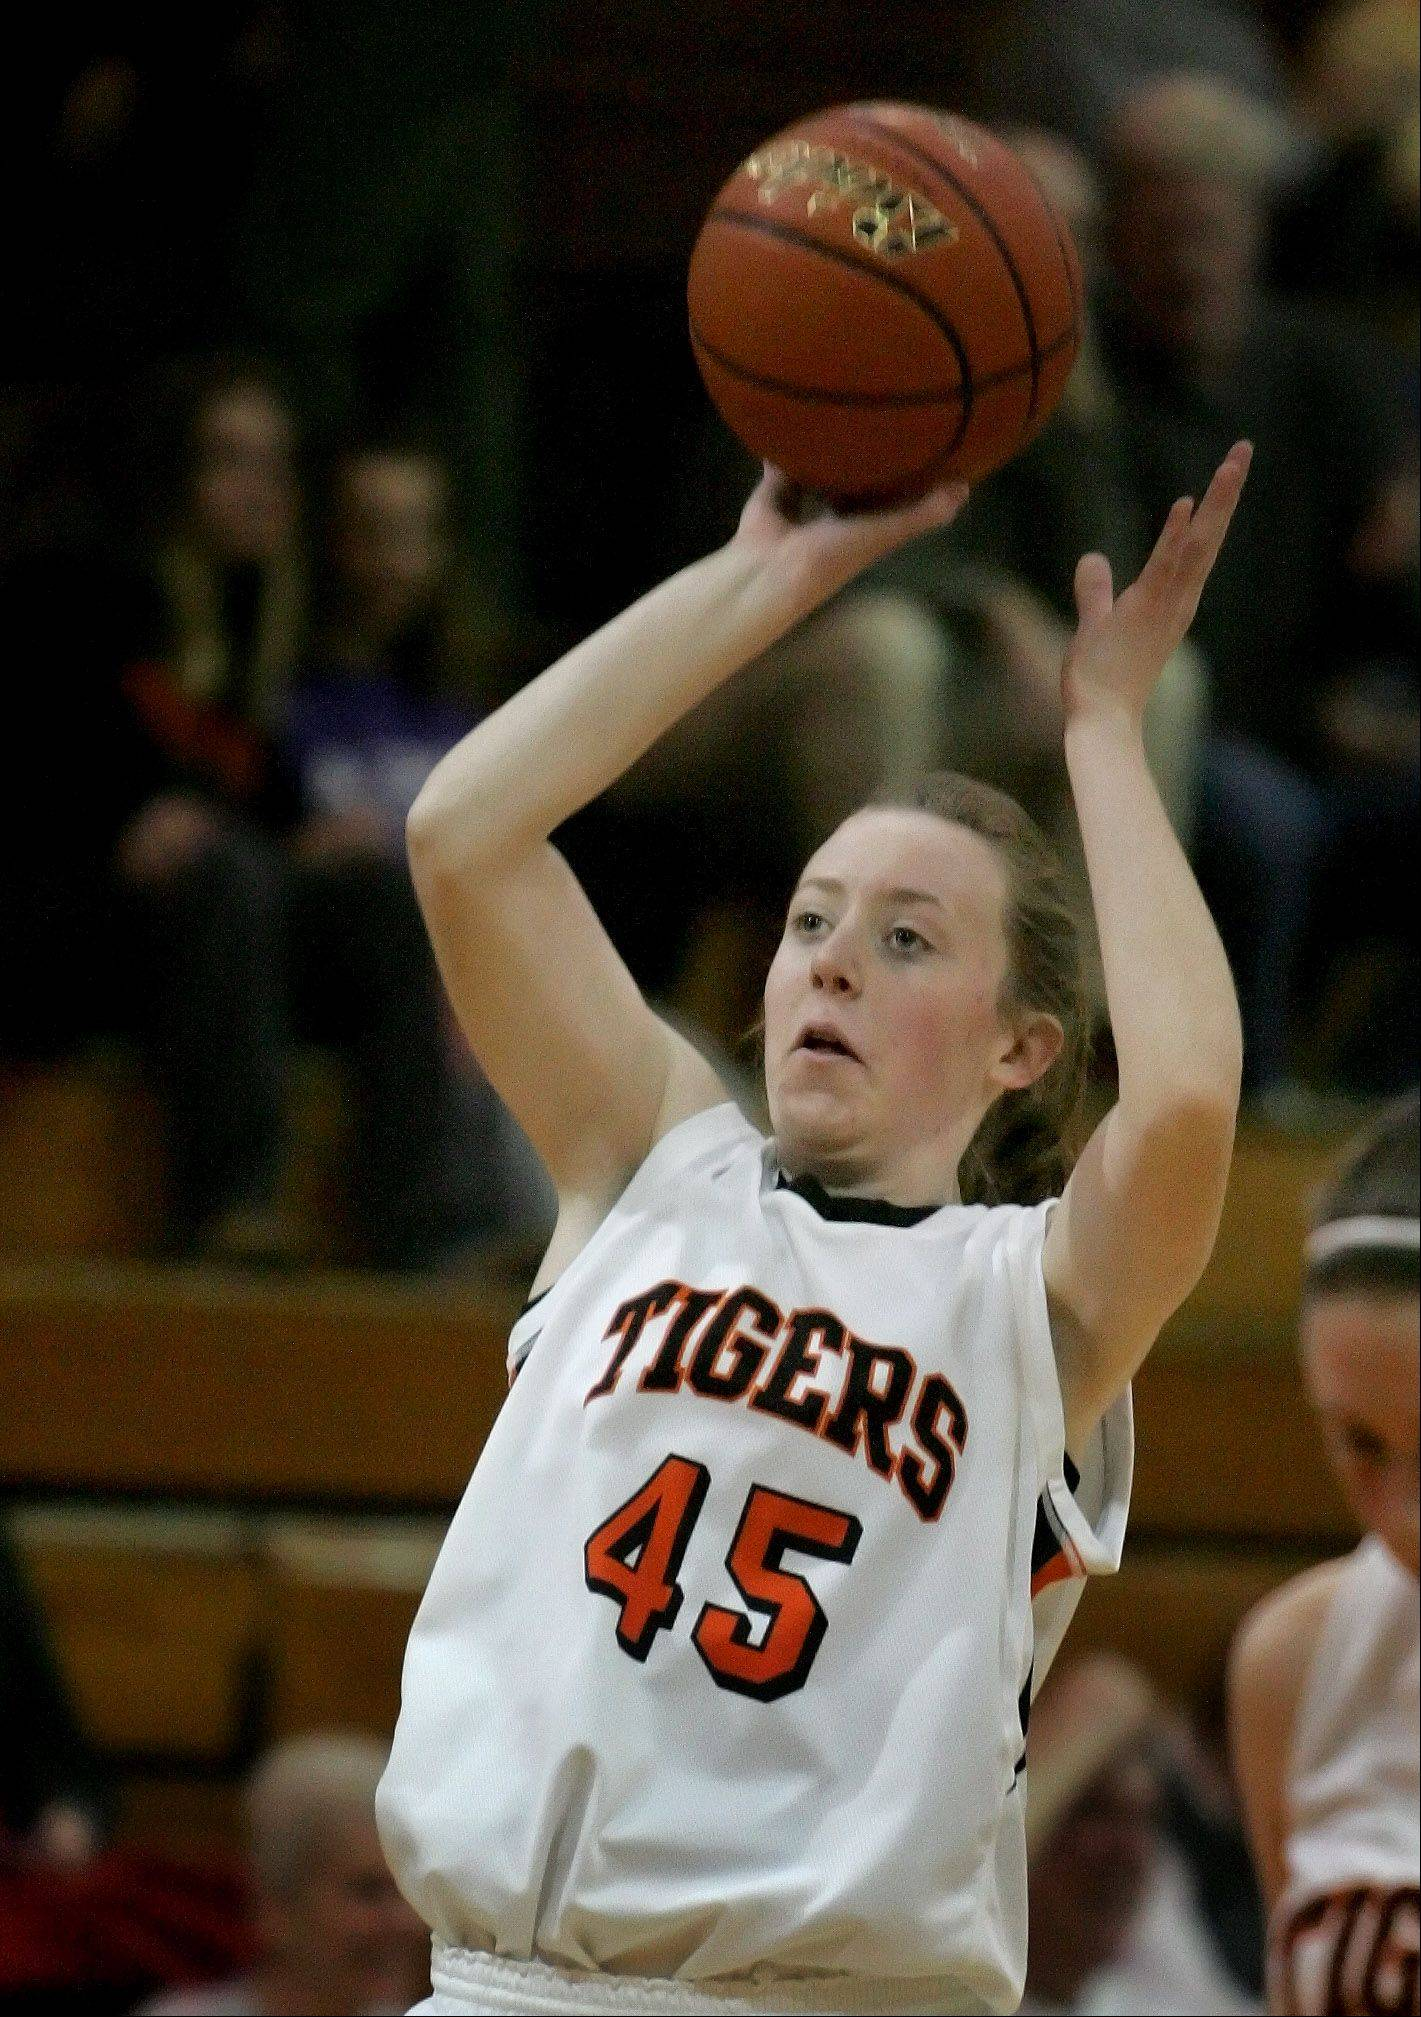 Meghan Waldron of Wheaton Warrenville South.